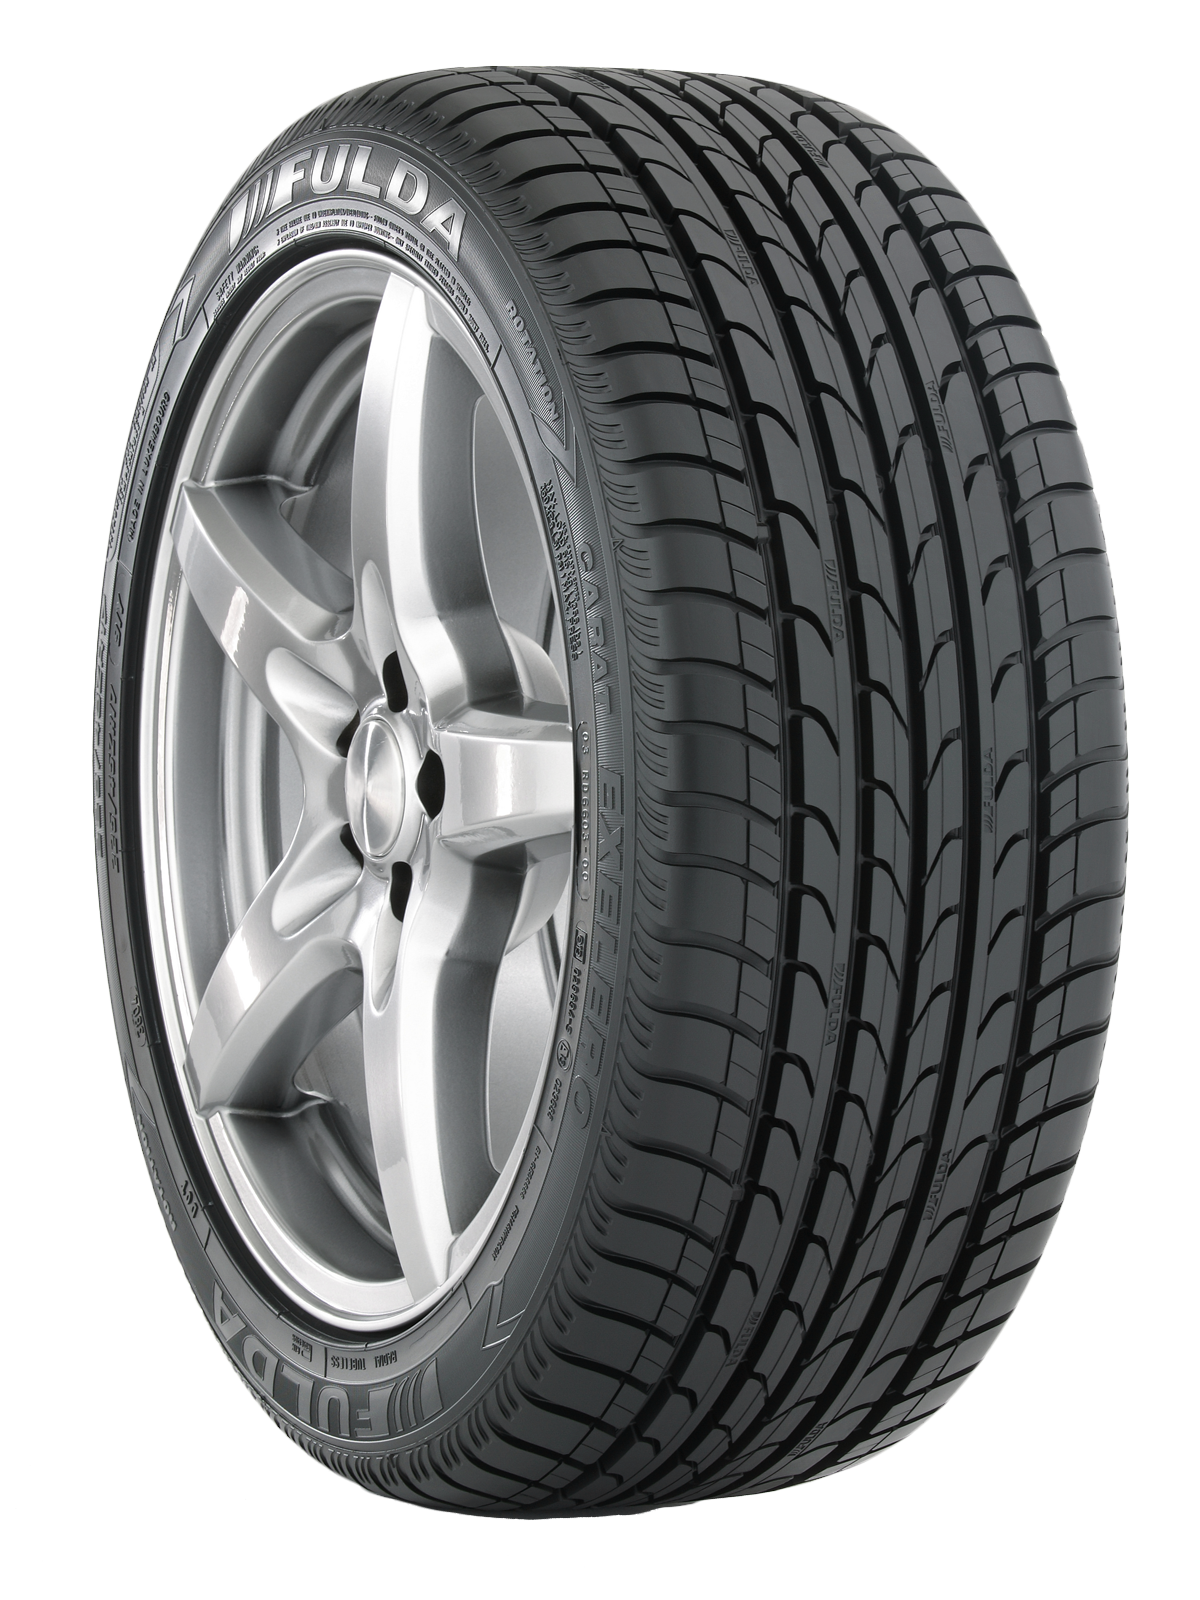 Living Tyre Transparent.png - PNG Tire